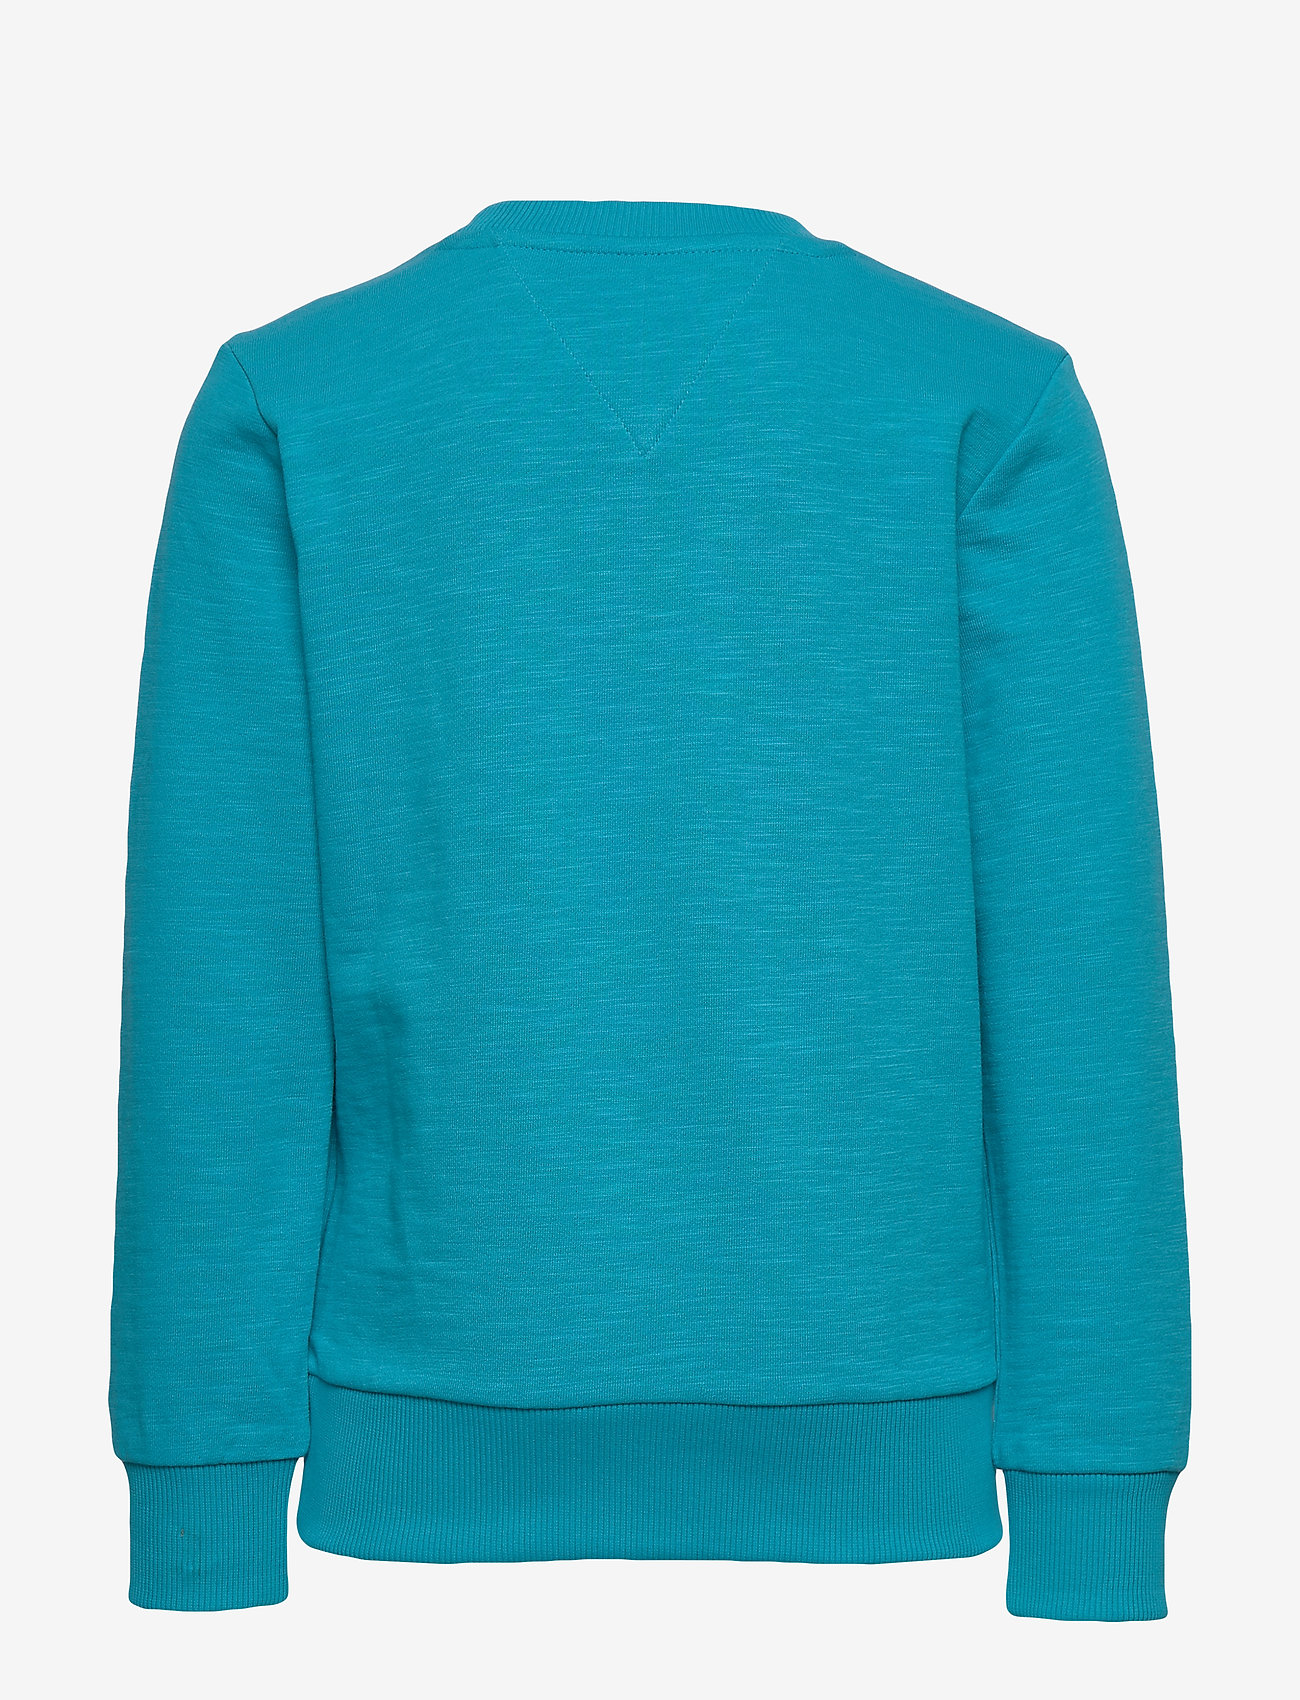 Tommy Hilfiger - ESSENTIAL LOGO SWEAT - sweatshirts - exotic teal 326-650 - 1